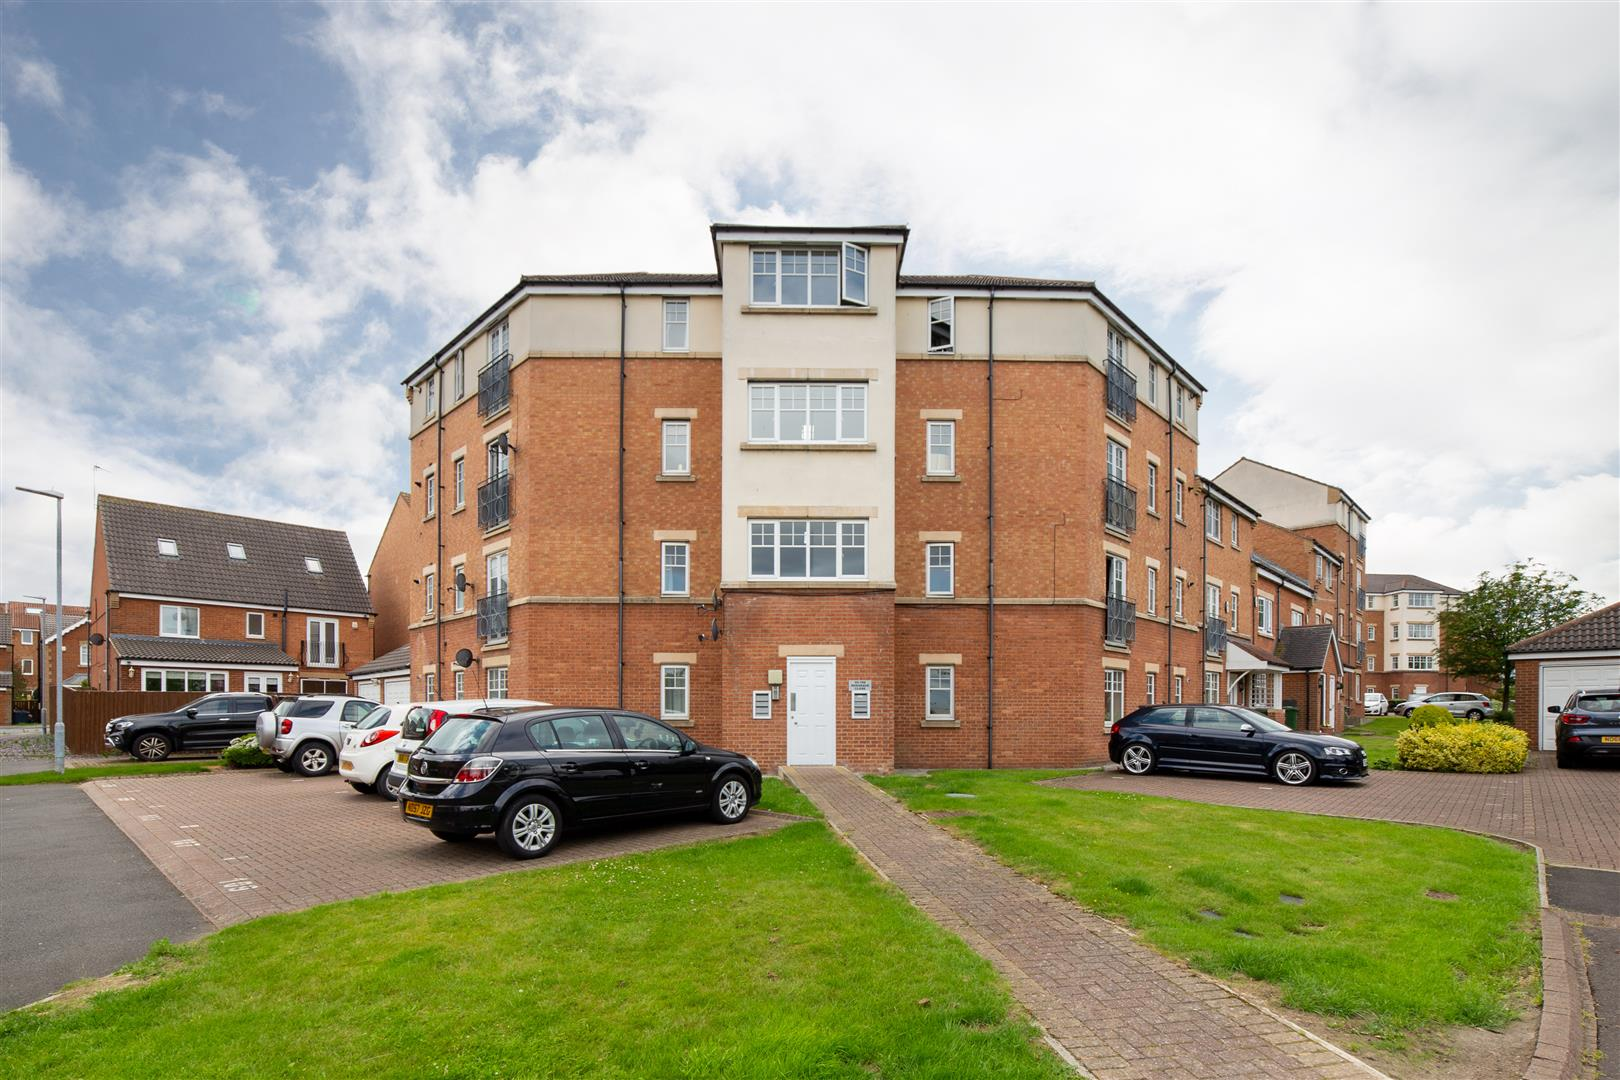 2 bed flat for sale in Gateshead, NE8 3JD, NE8